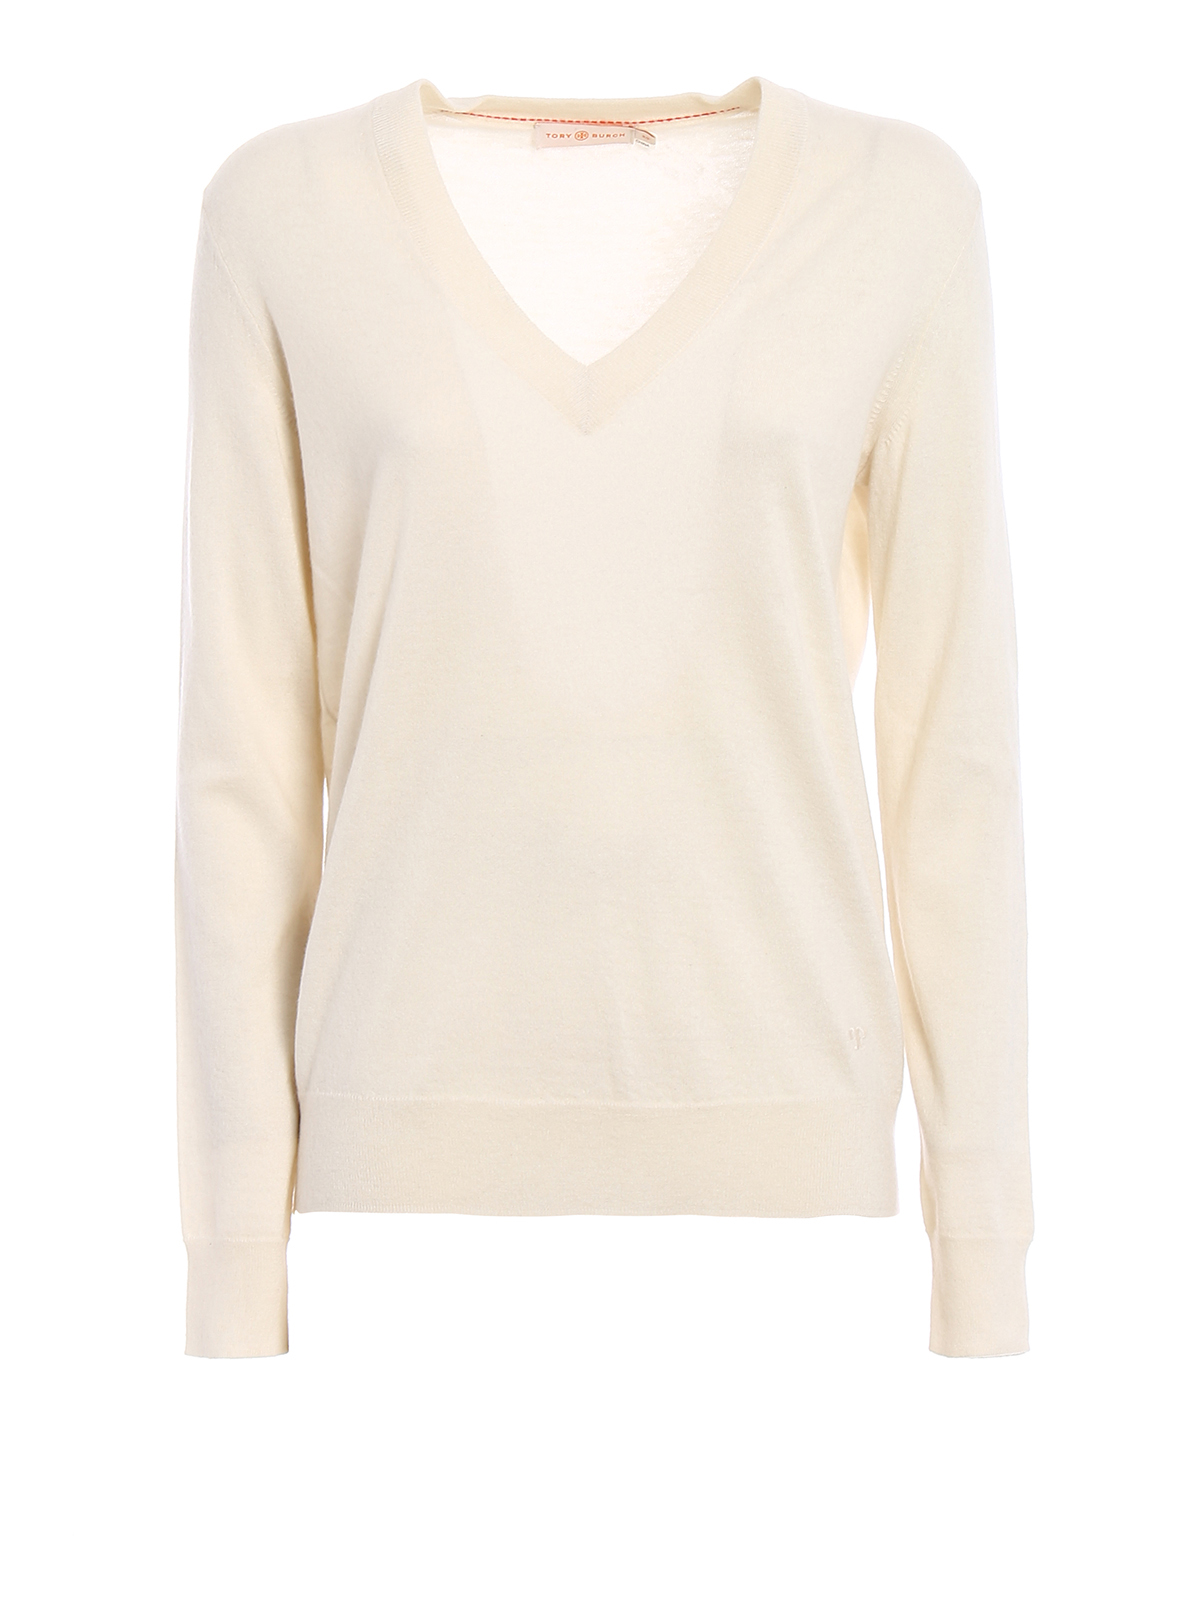 a23de4b2bed Tory Burch - Marilyn ivory cashmere sweater - v necks - 40724104